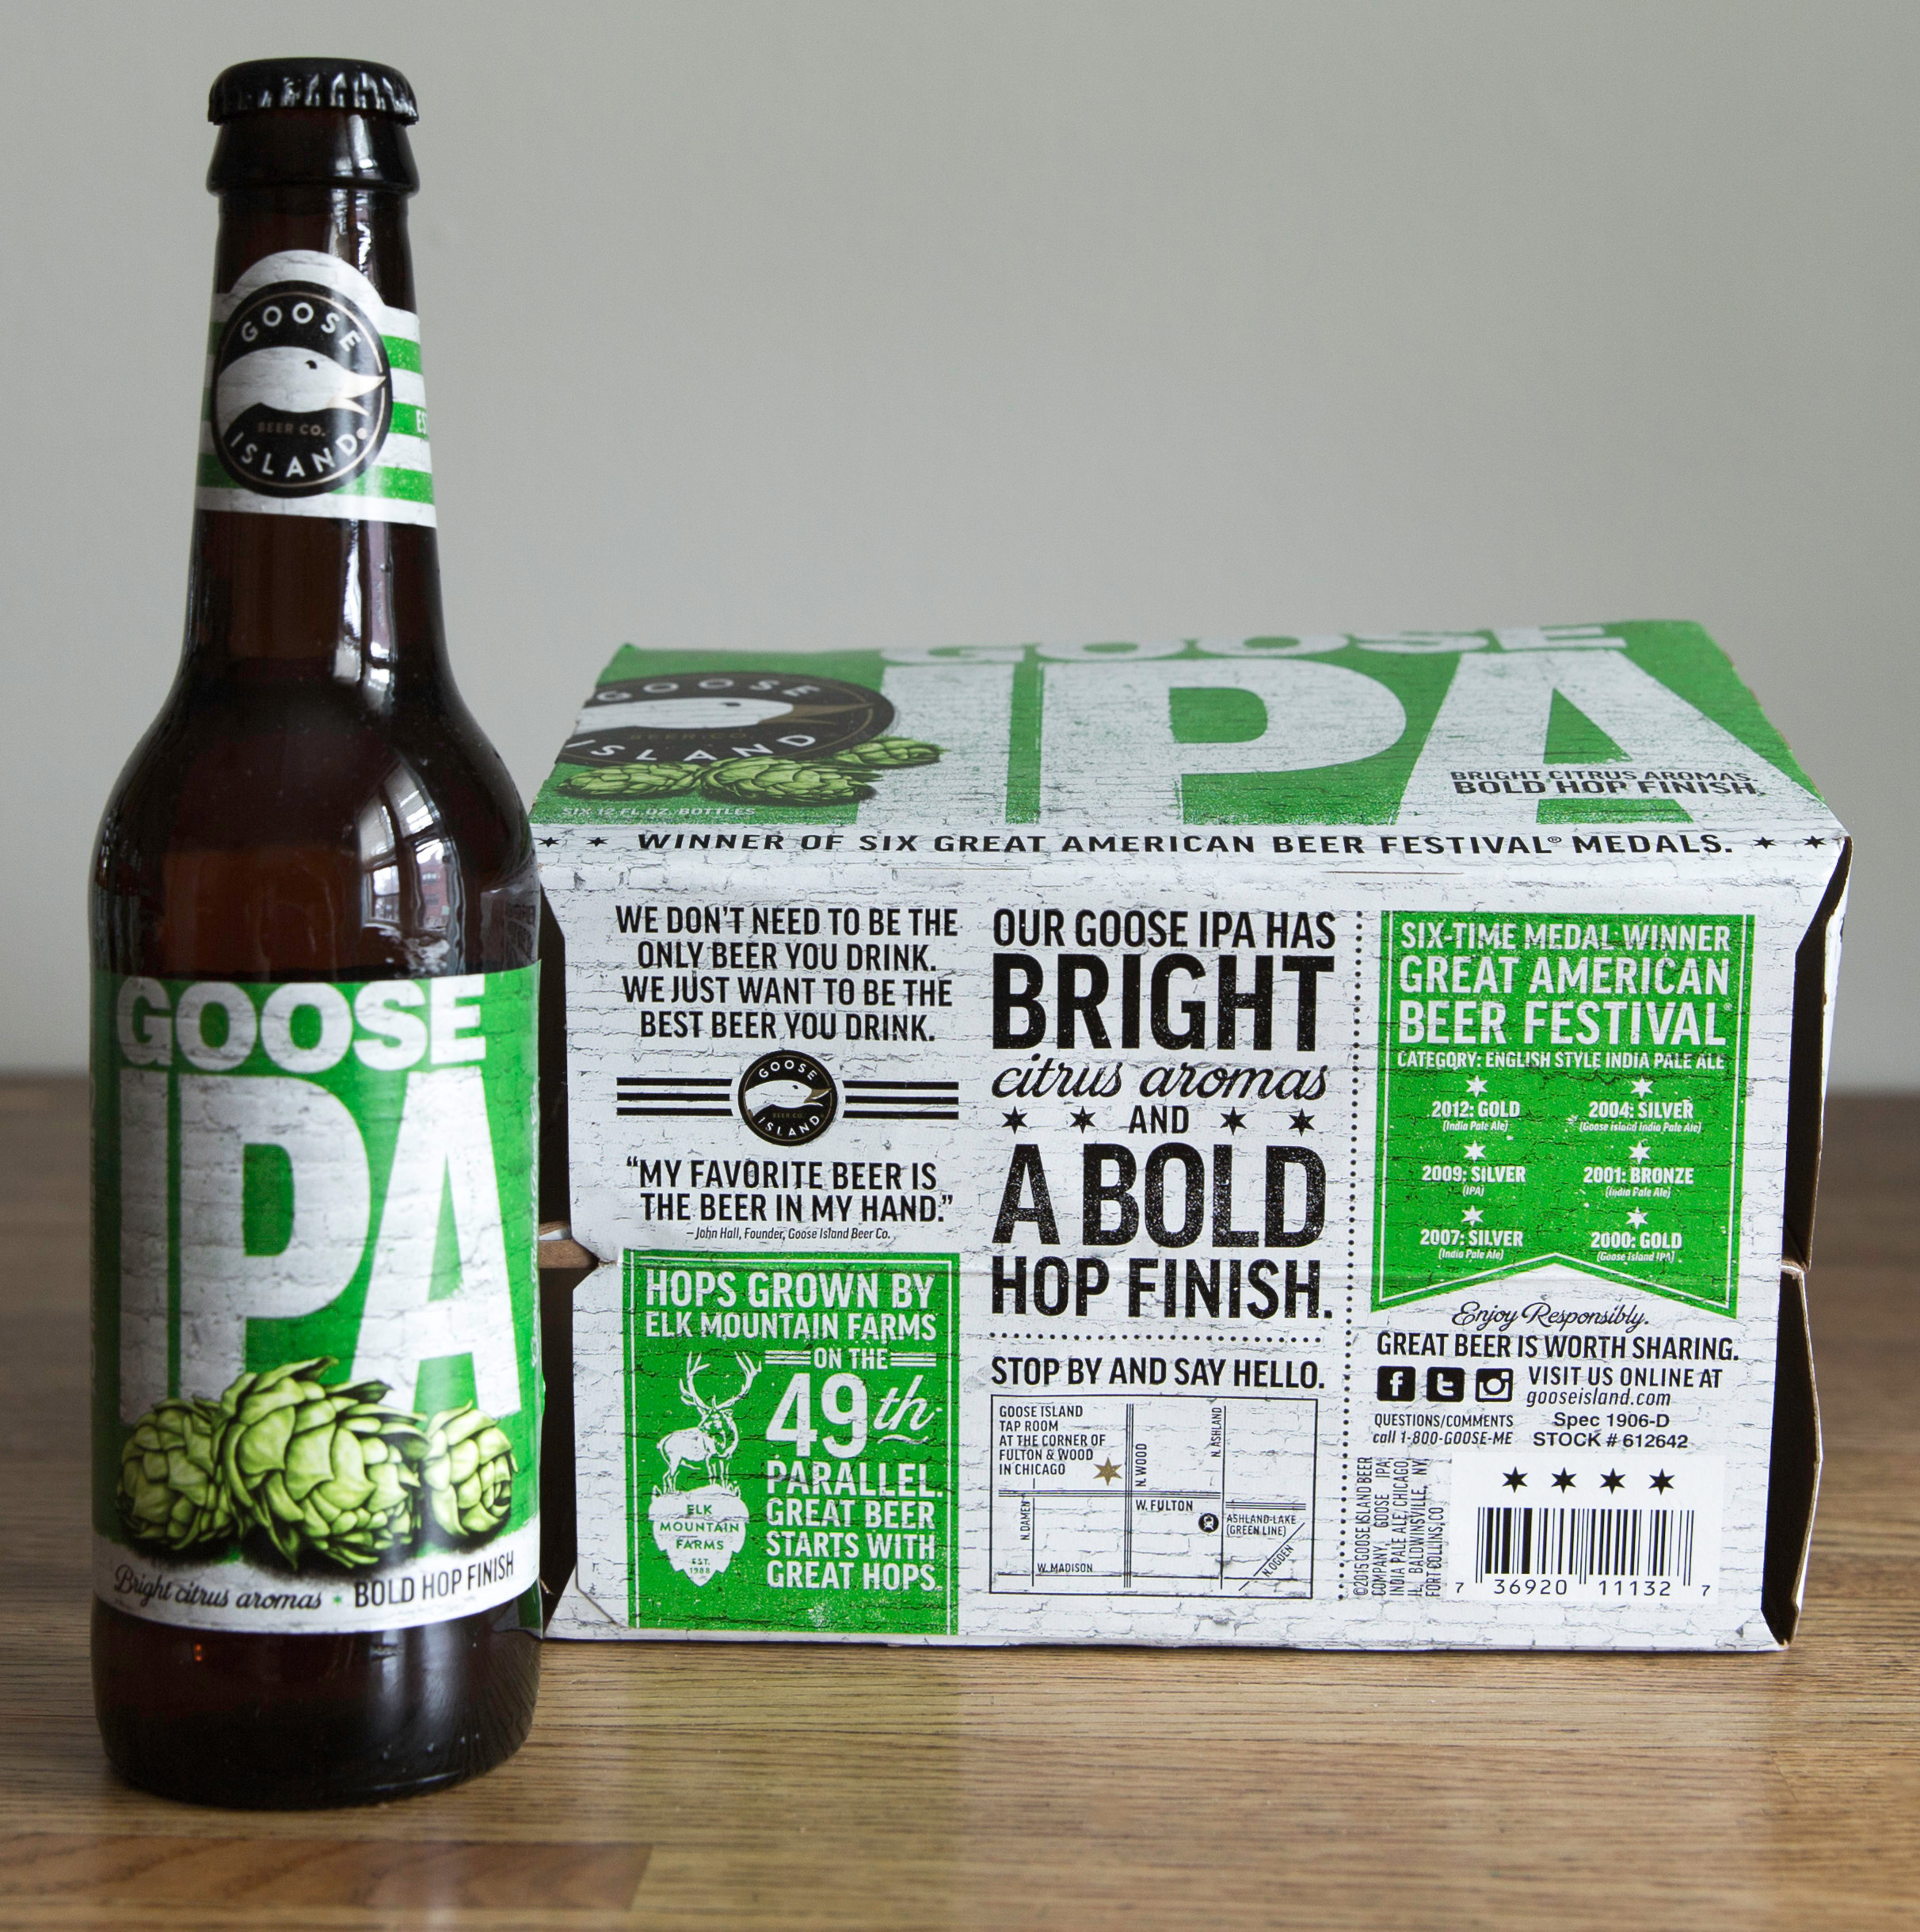 Goose_IPA_six_pack_packaging.jpg